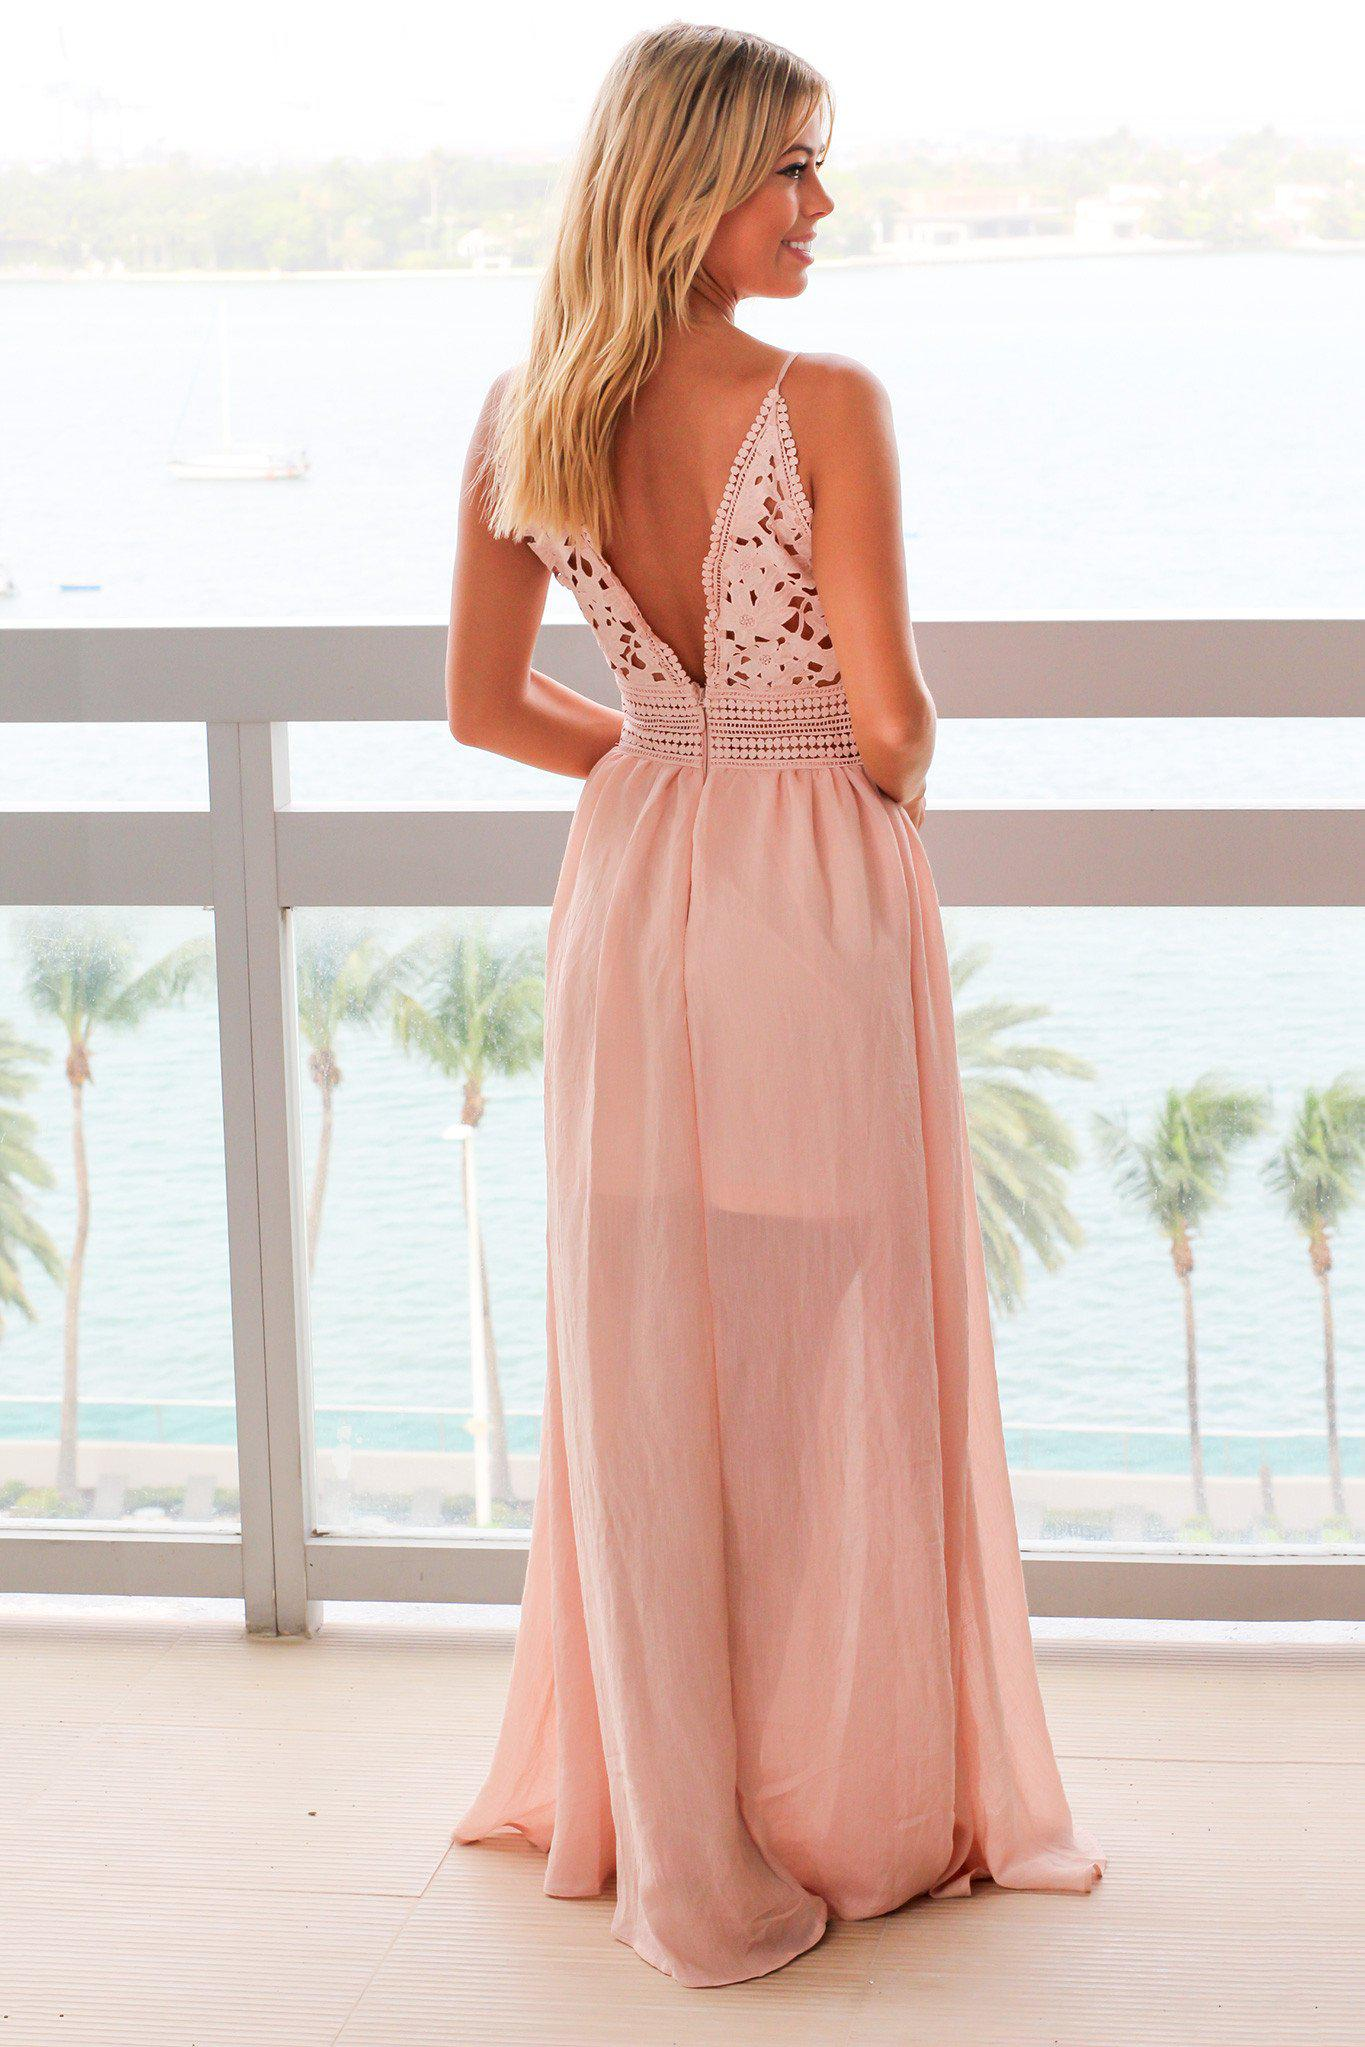 Dusty Blush Maxi Dress with Crochet Top